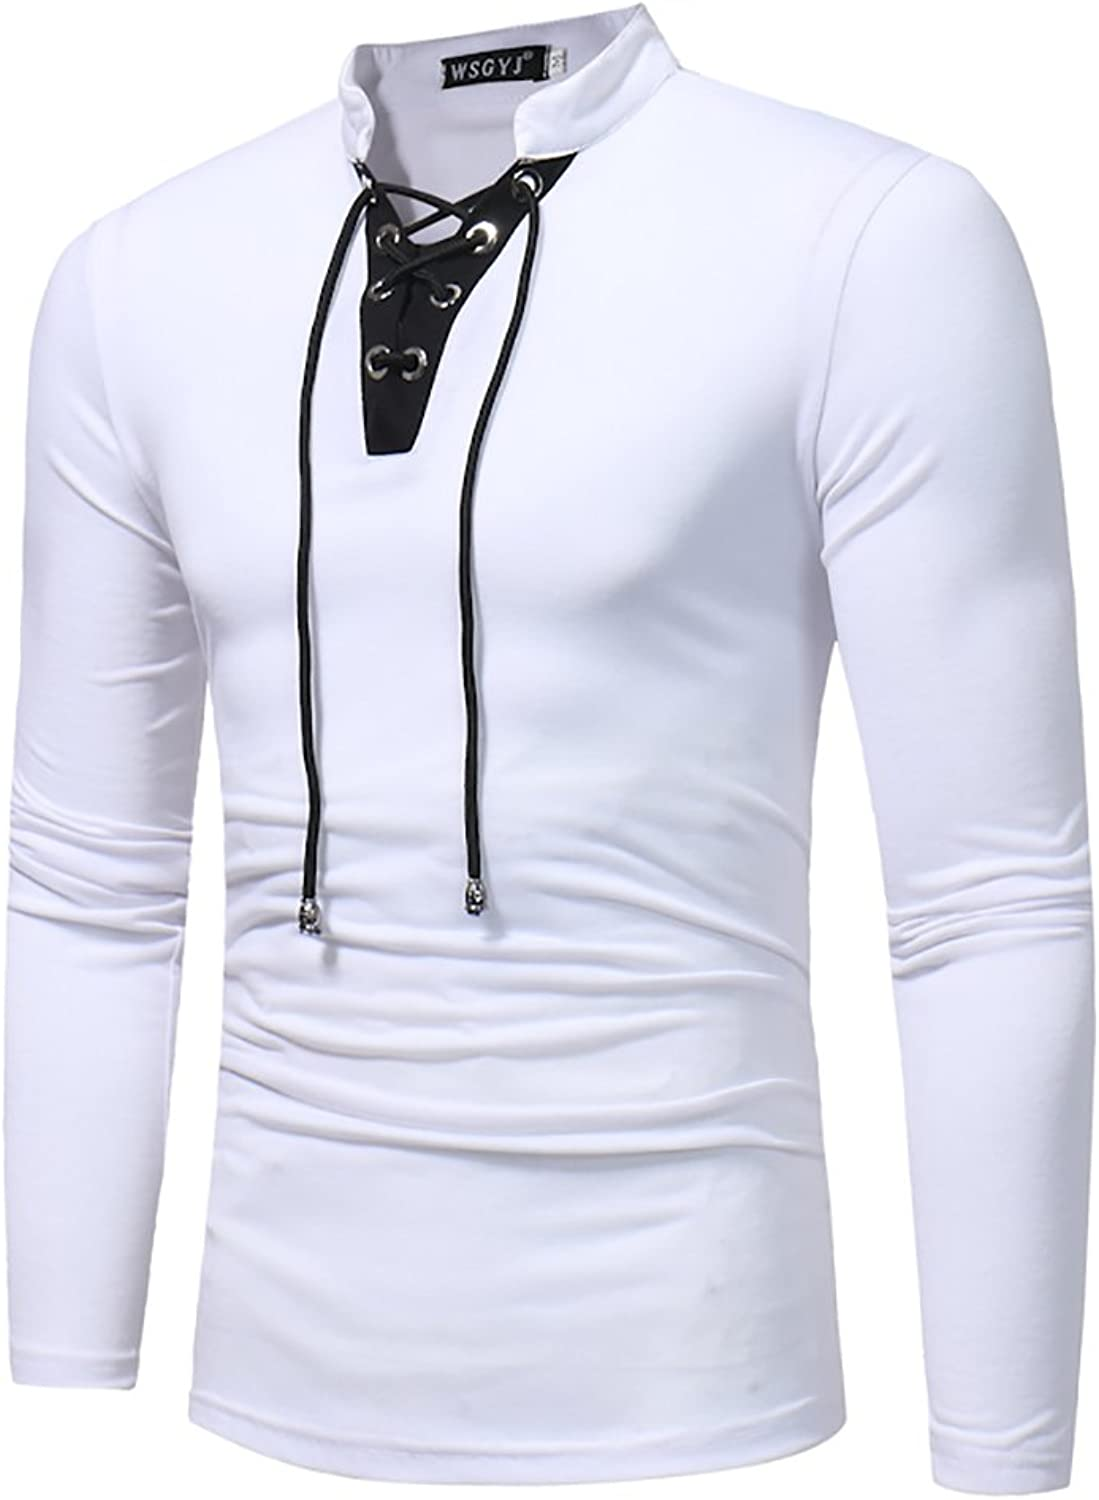 Men's T Shirts LongSleeved Fashion Casual V Neck Drawstring Tie Shirt Solid colord Slim Fit Shirt 2018 New Men's Clothing White, Black, Royal blueee (color   White, Size   2XL)